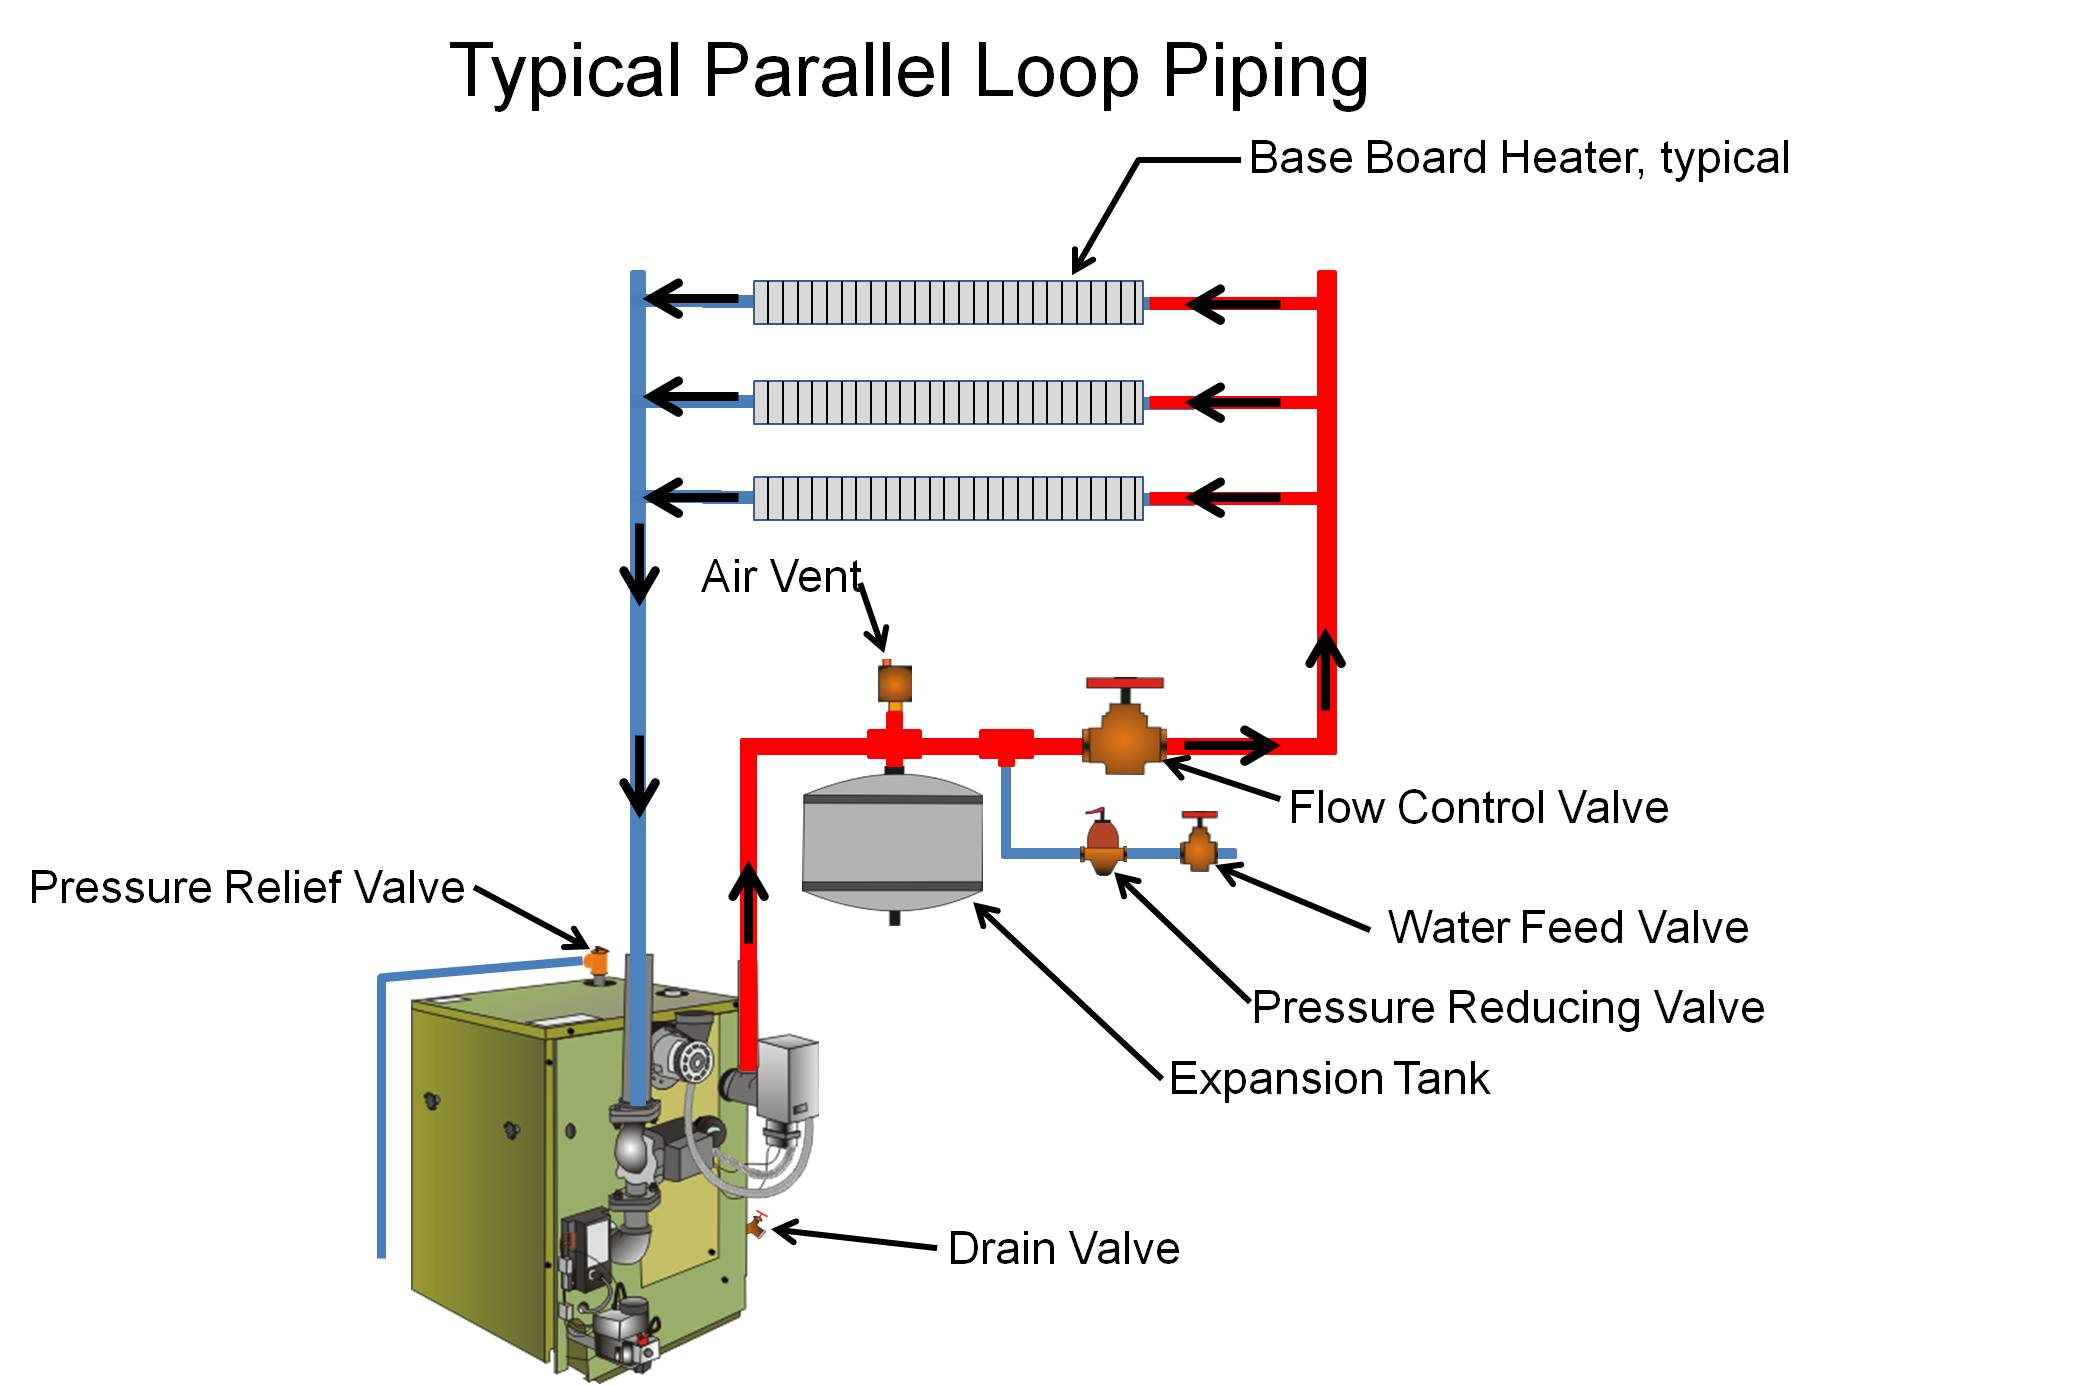 Boilers Can Provide Zoned Heating With Parallel Piping